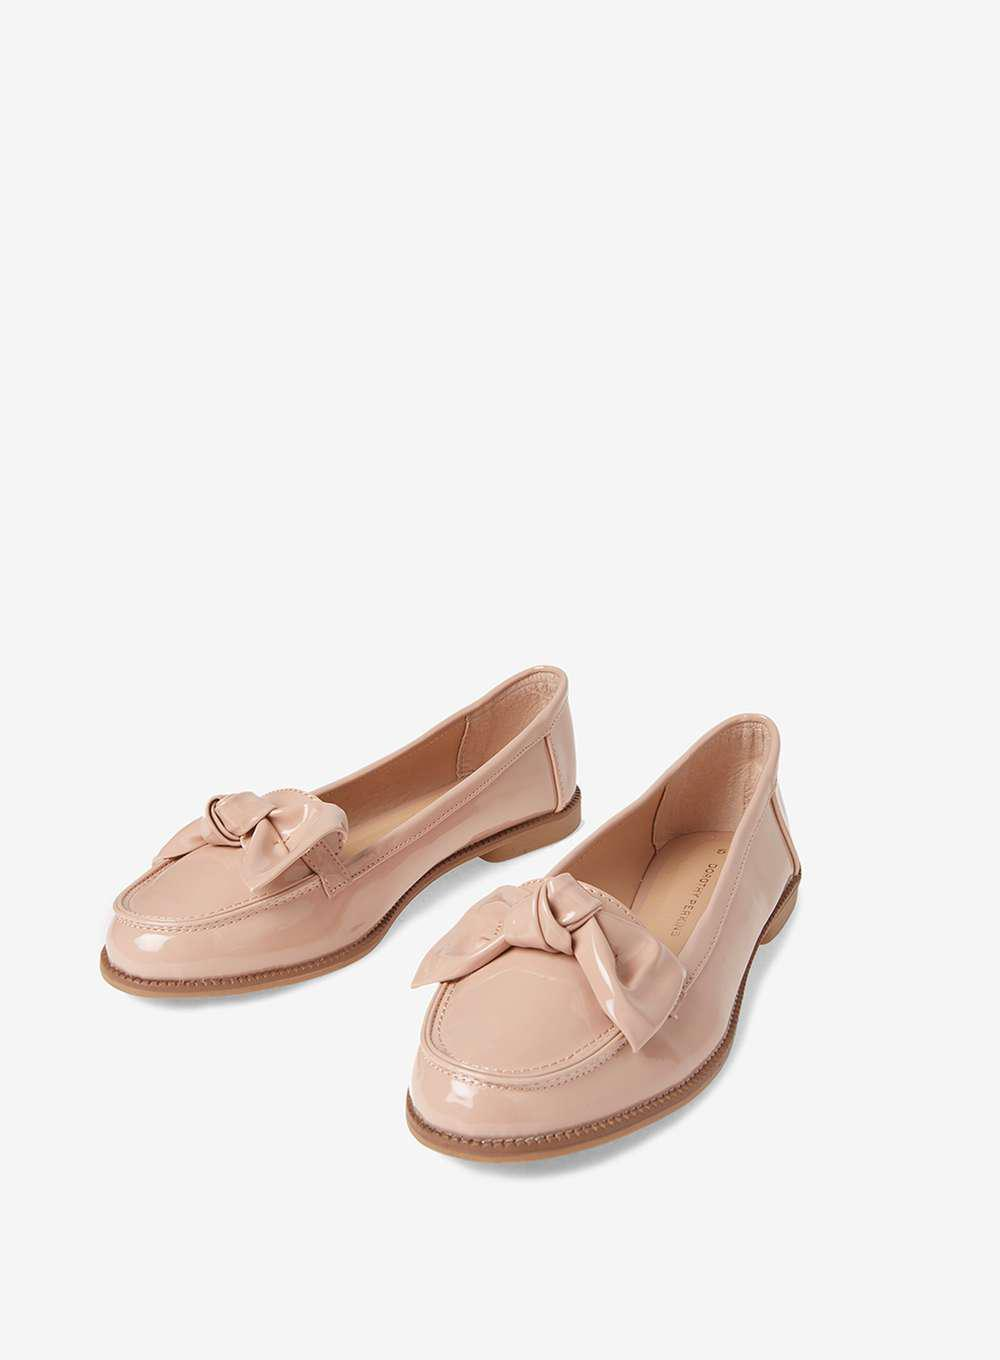 Nude Loafers Lyst 'leena' Perkins Dorothy White In qWqf8EAn